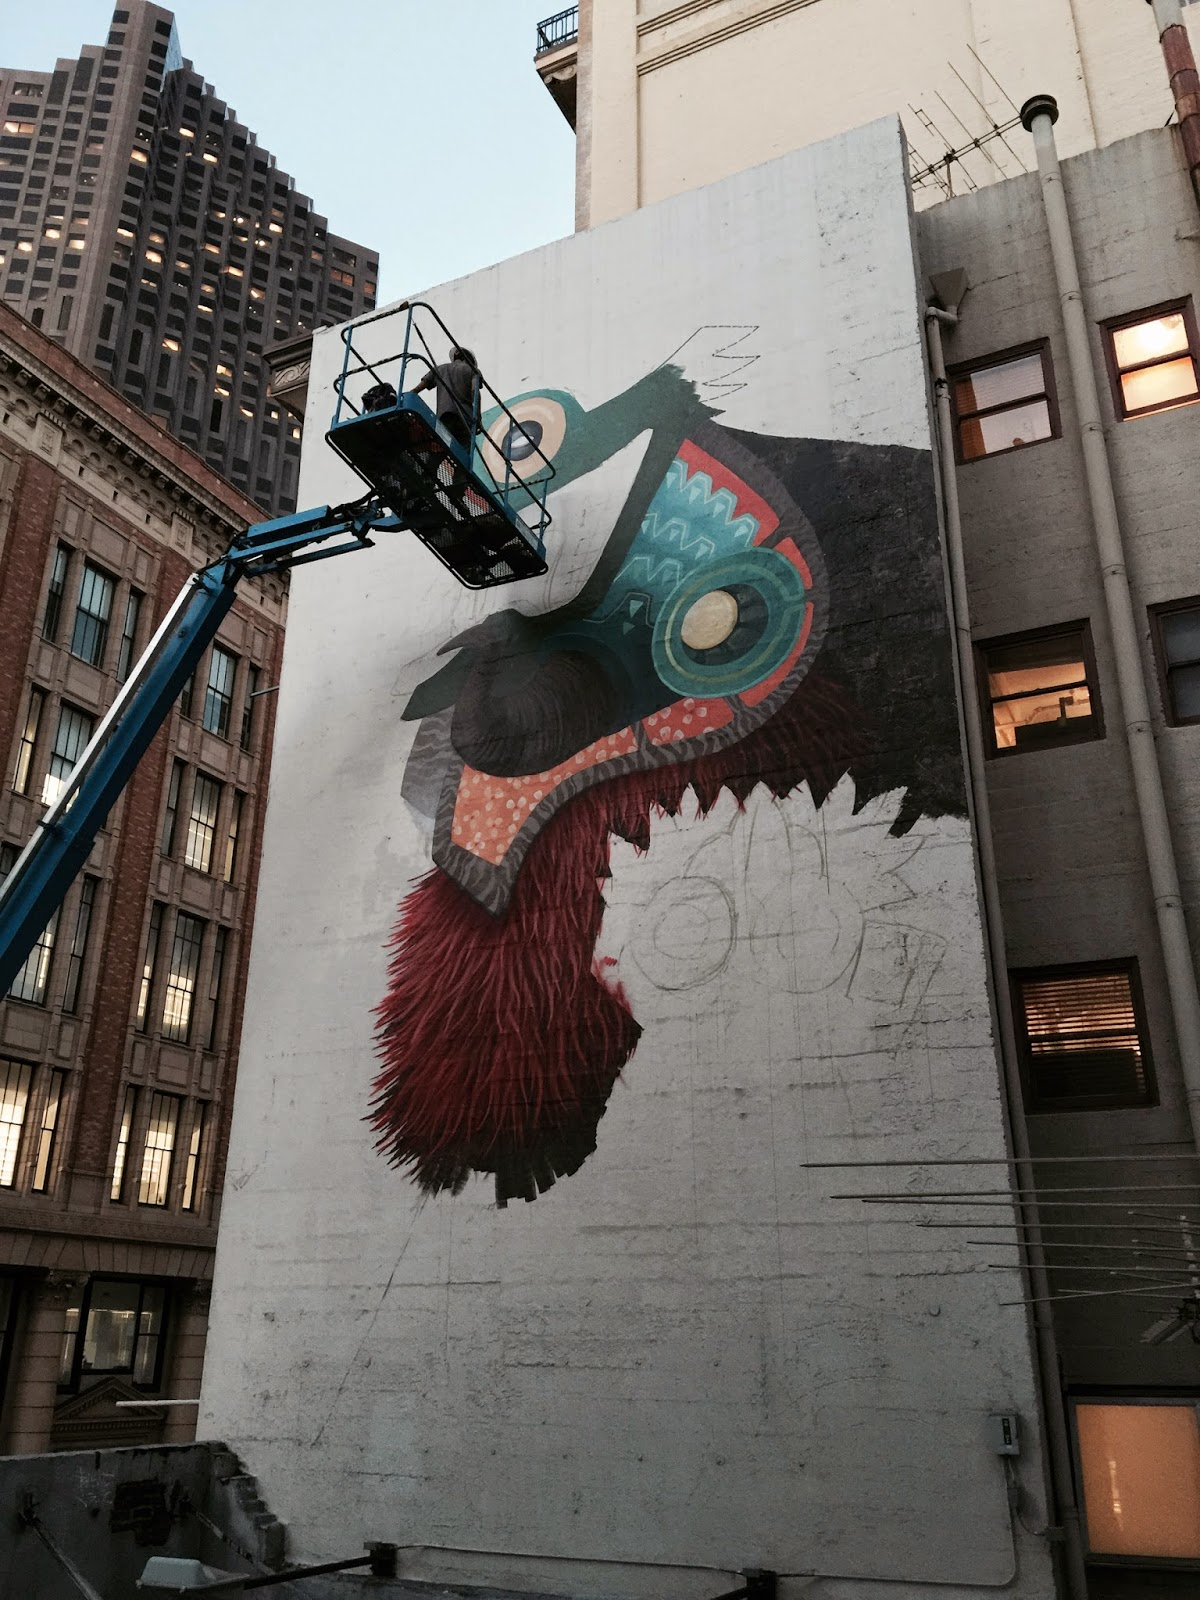 Epic Curiot paints a new mural in San Francisco USA